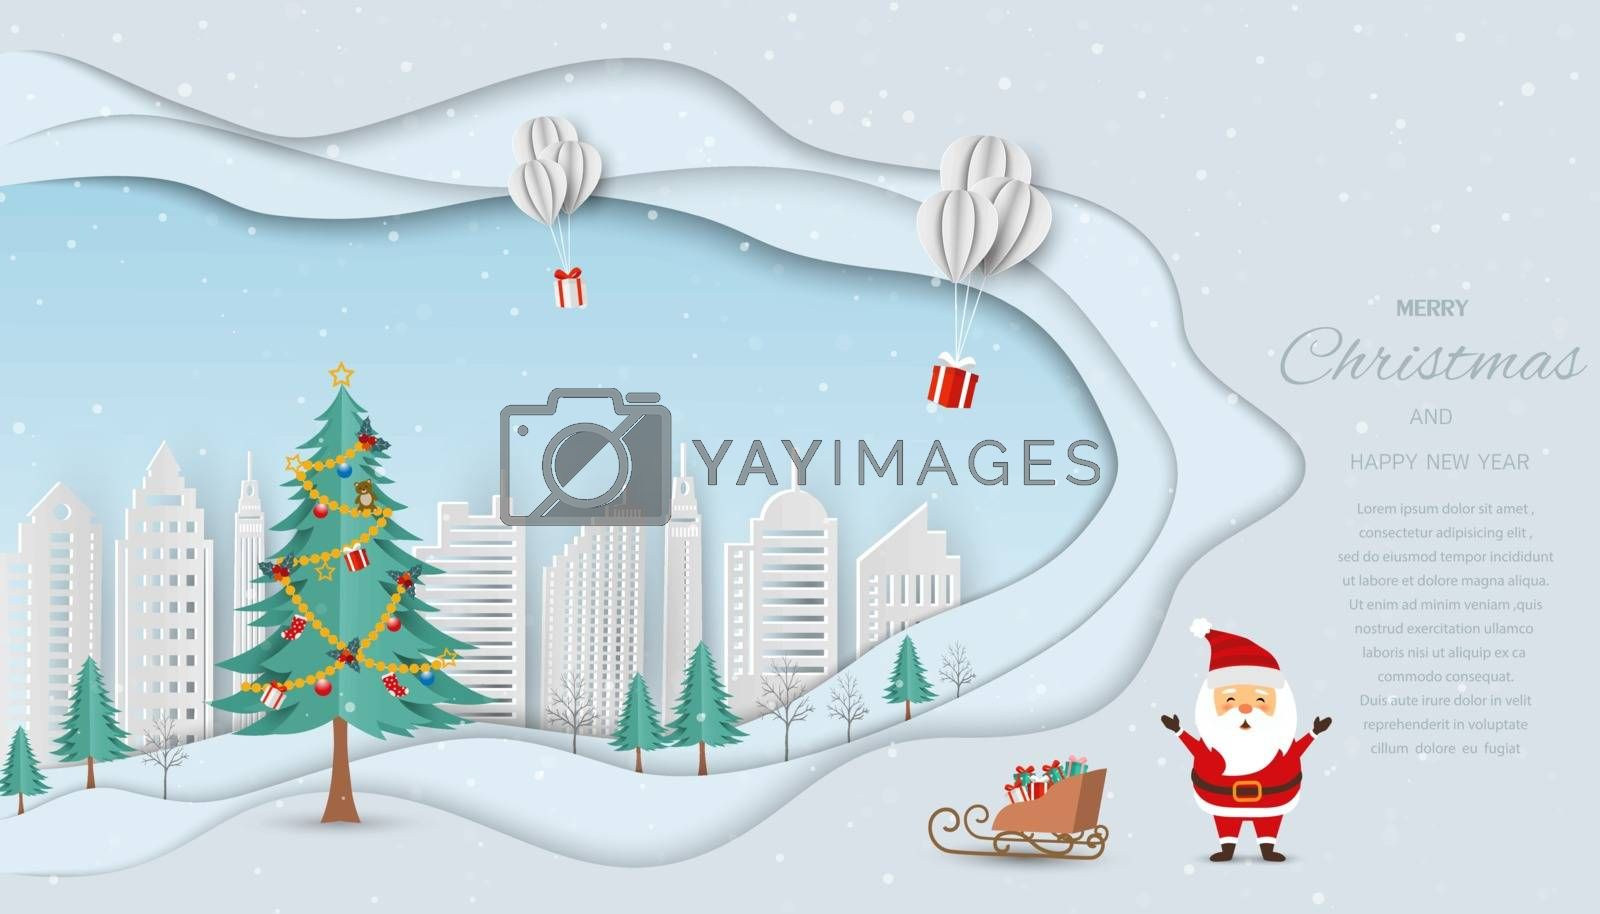 Merry Christmas and Happy new year greeting card,Santa Claus send gift boxes by balloons to white city by PIMPAKA